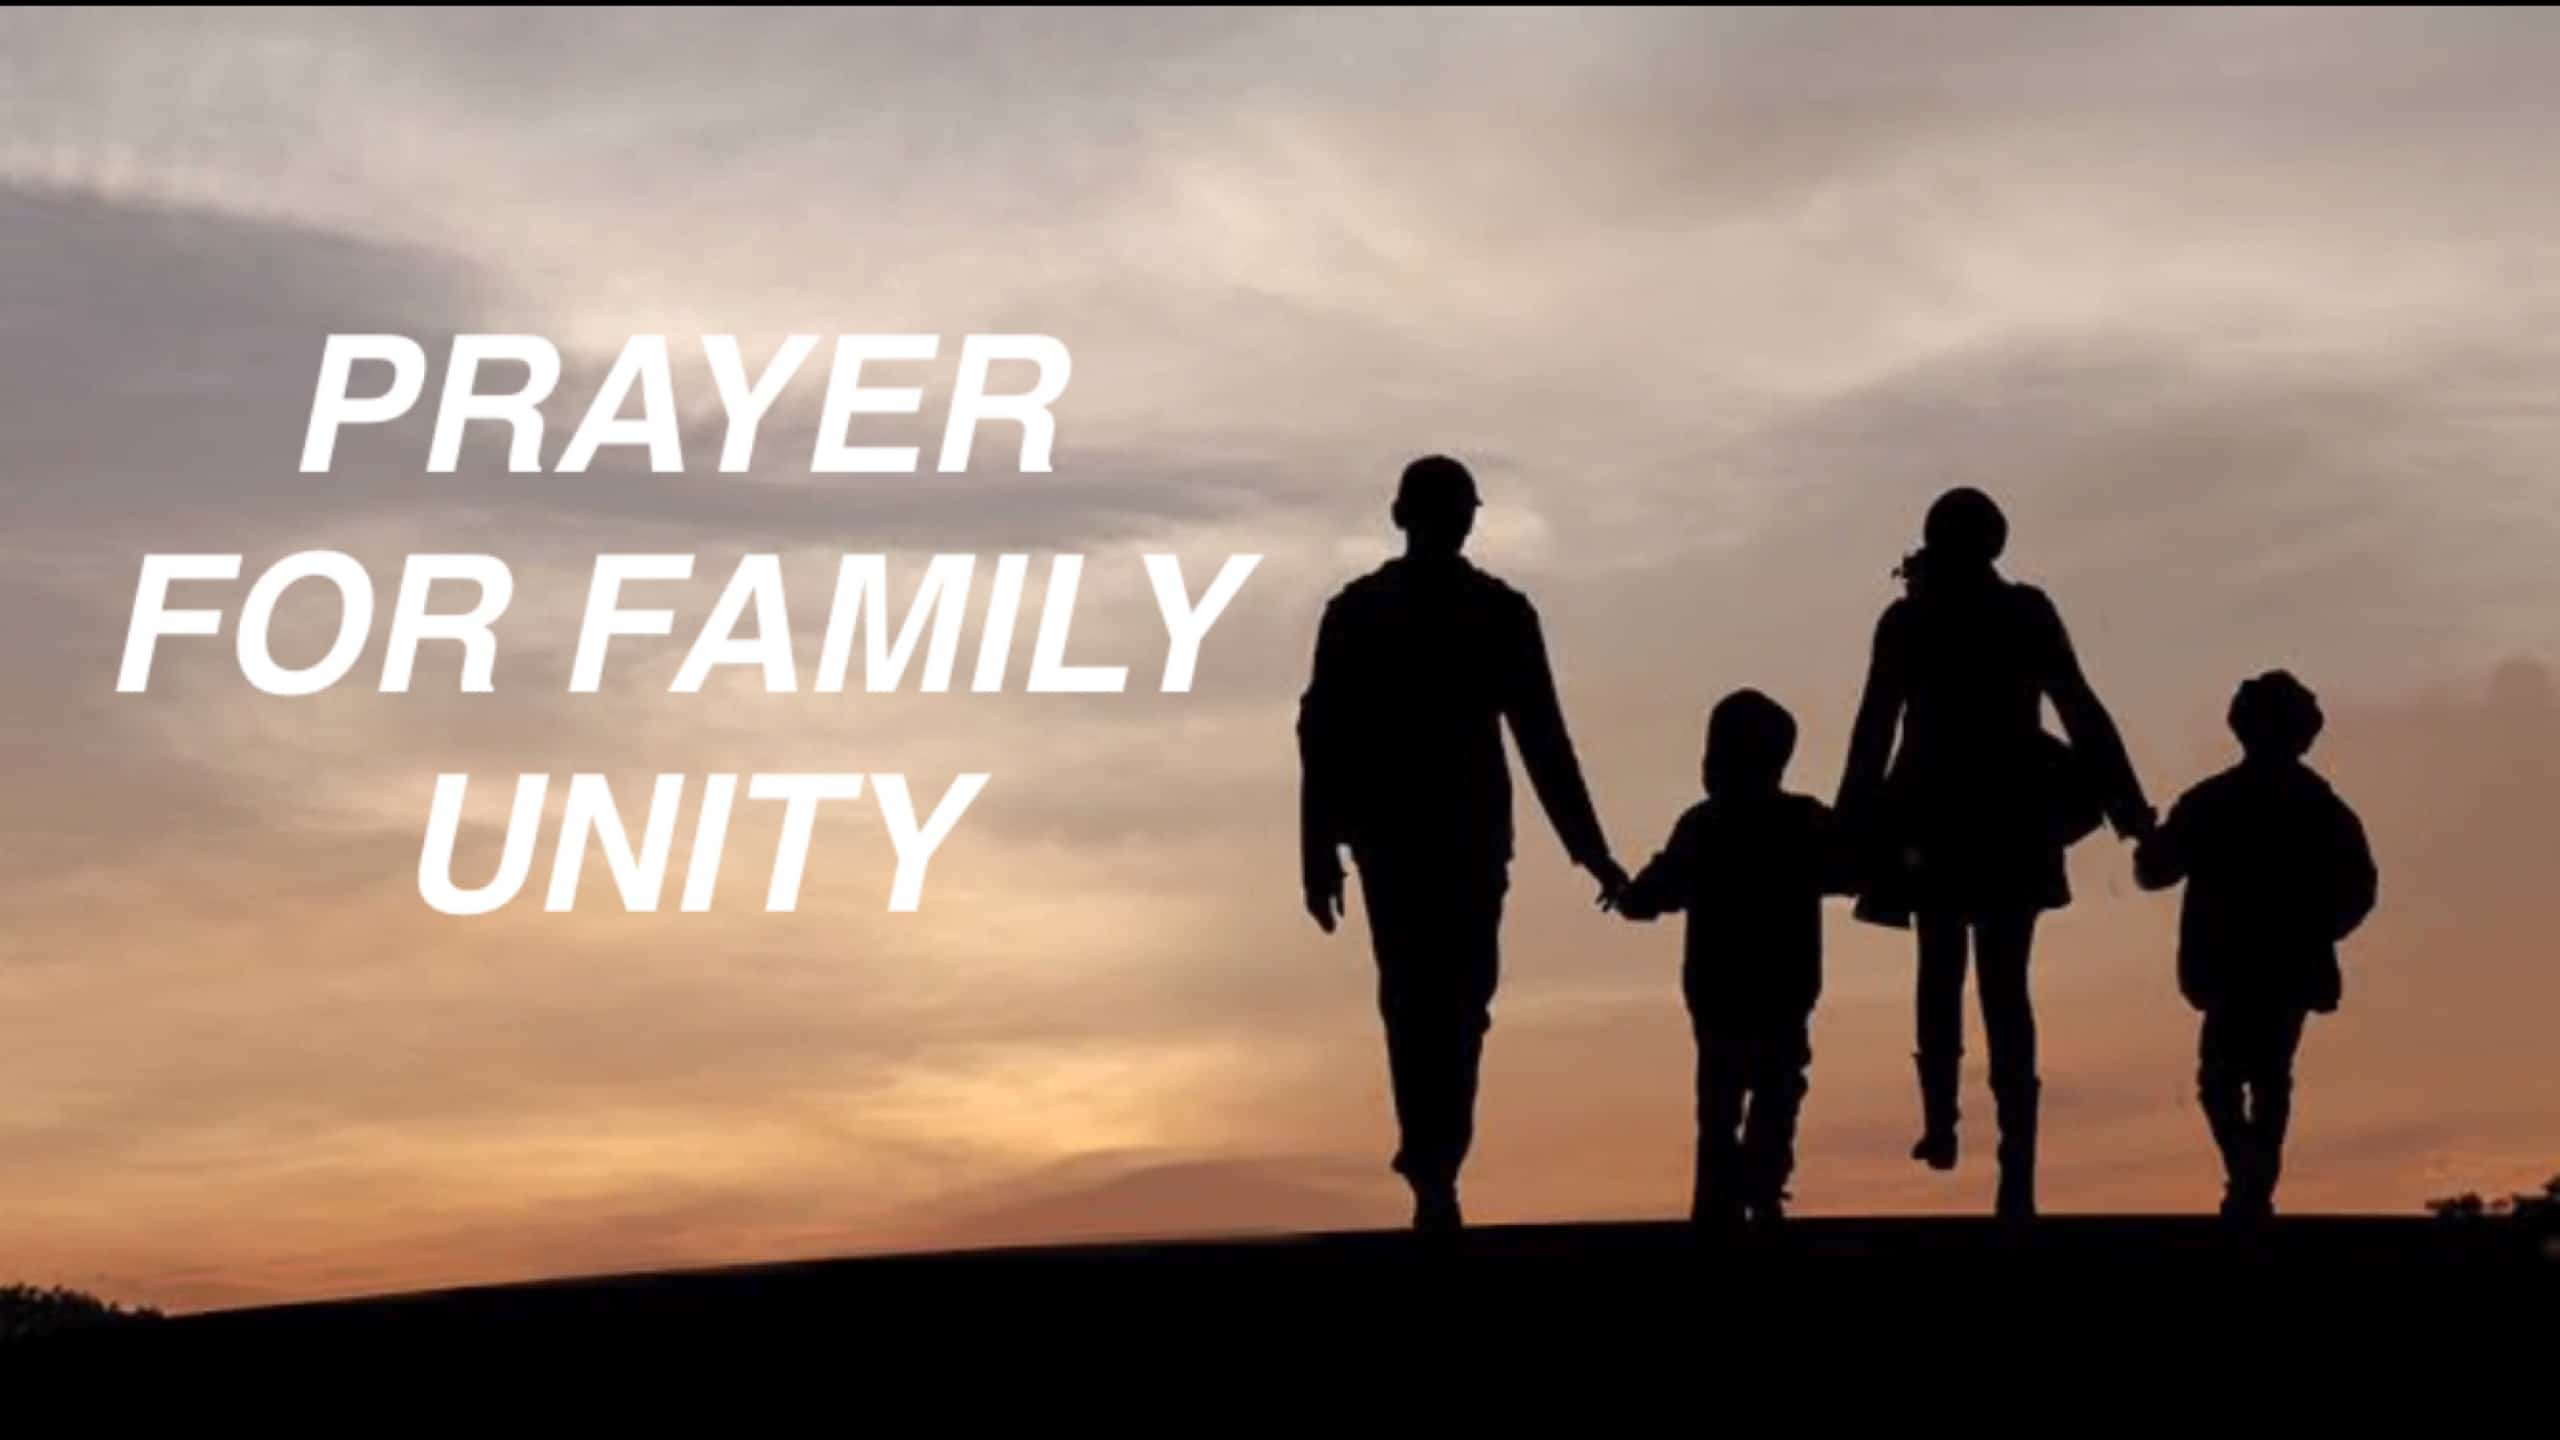 Prayer for family unity